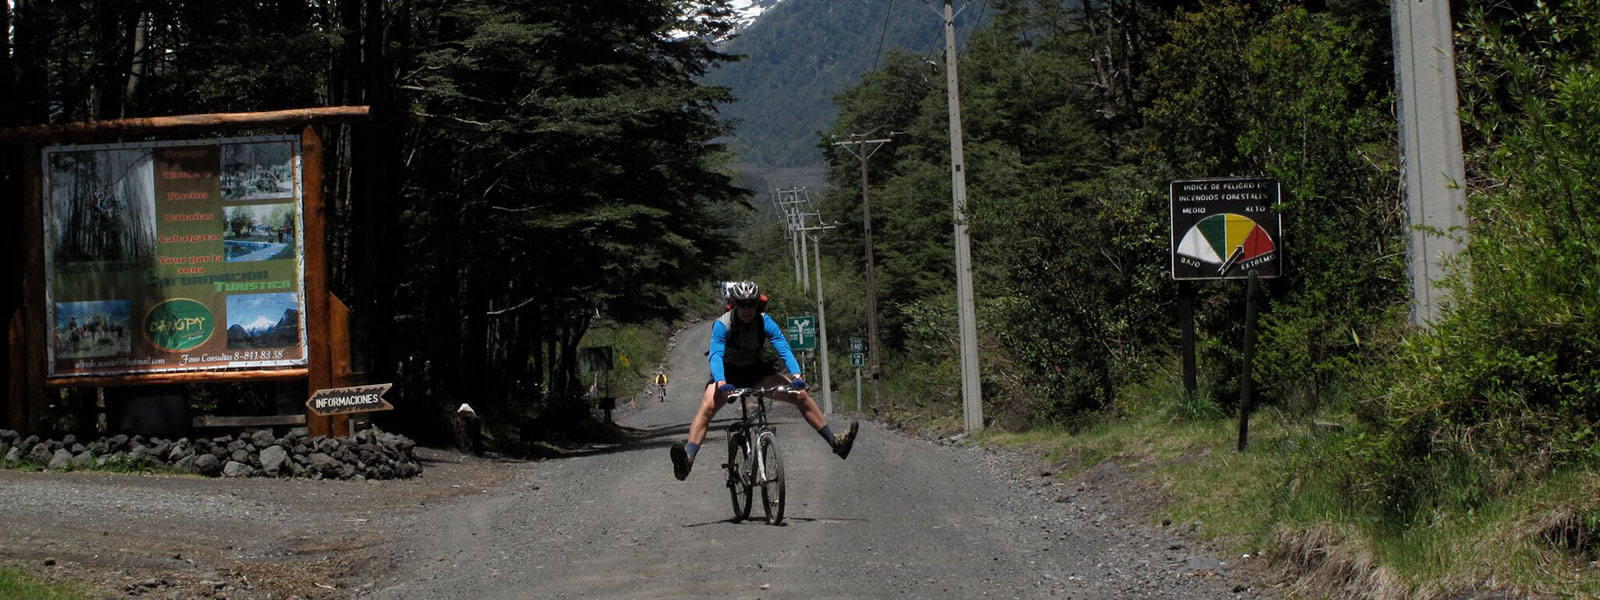 d8df0d6c7 ACROSS THE ANDES BIKING FROM ARGENTINA TO CHILE. Leght Trip